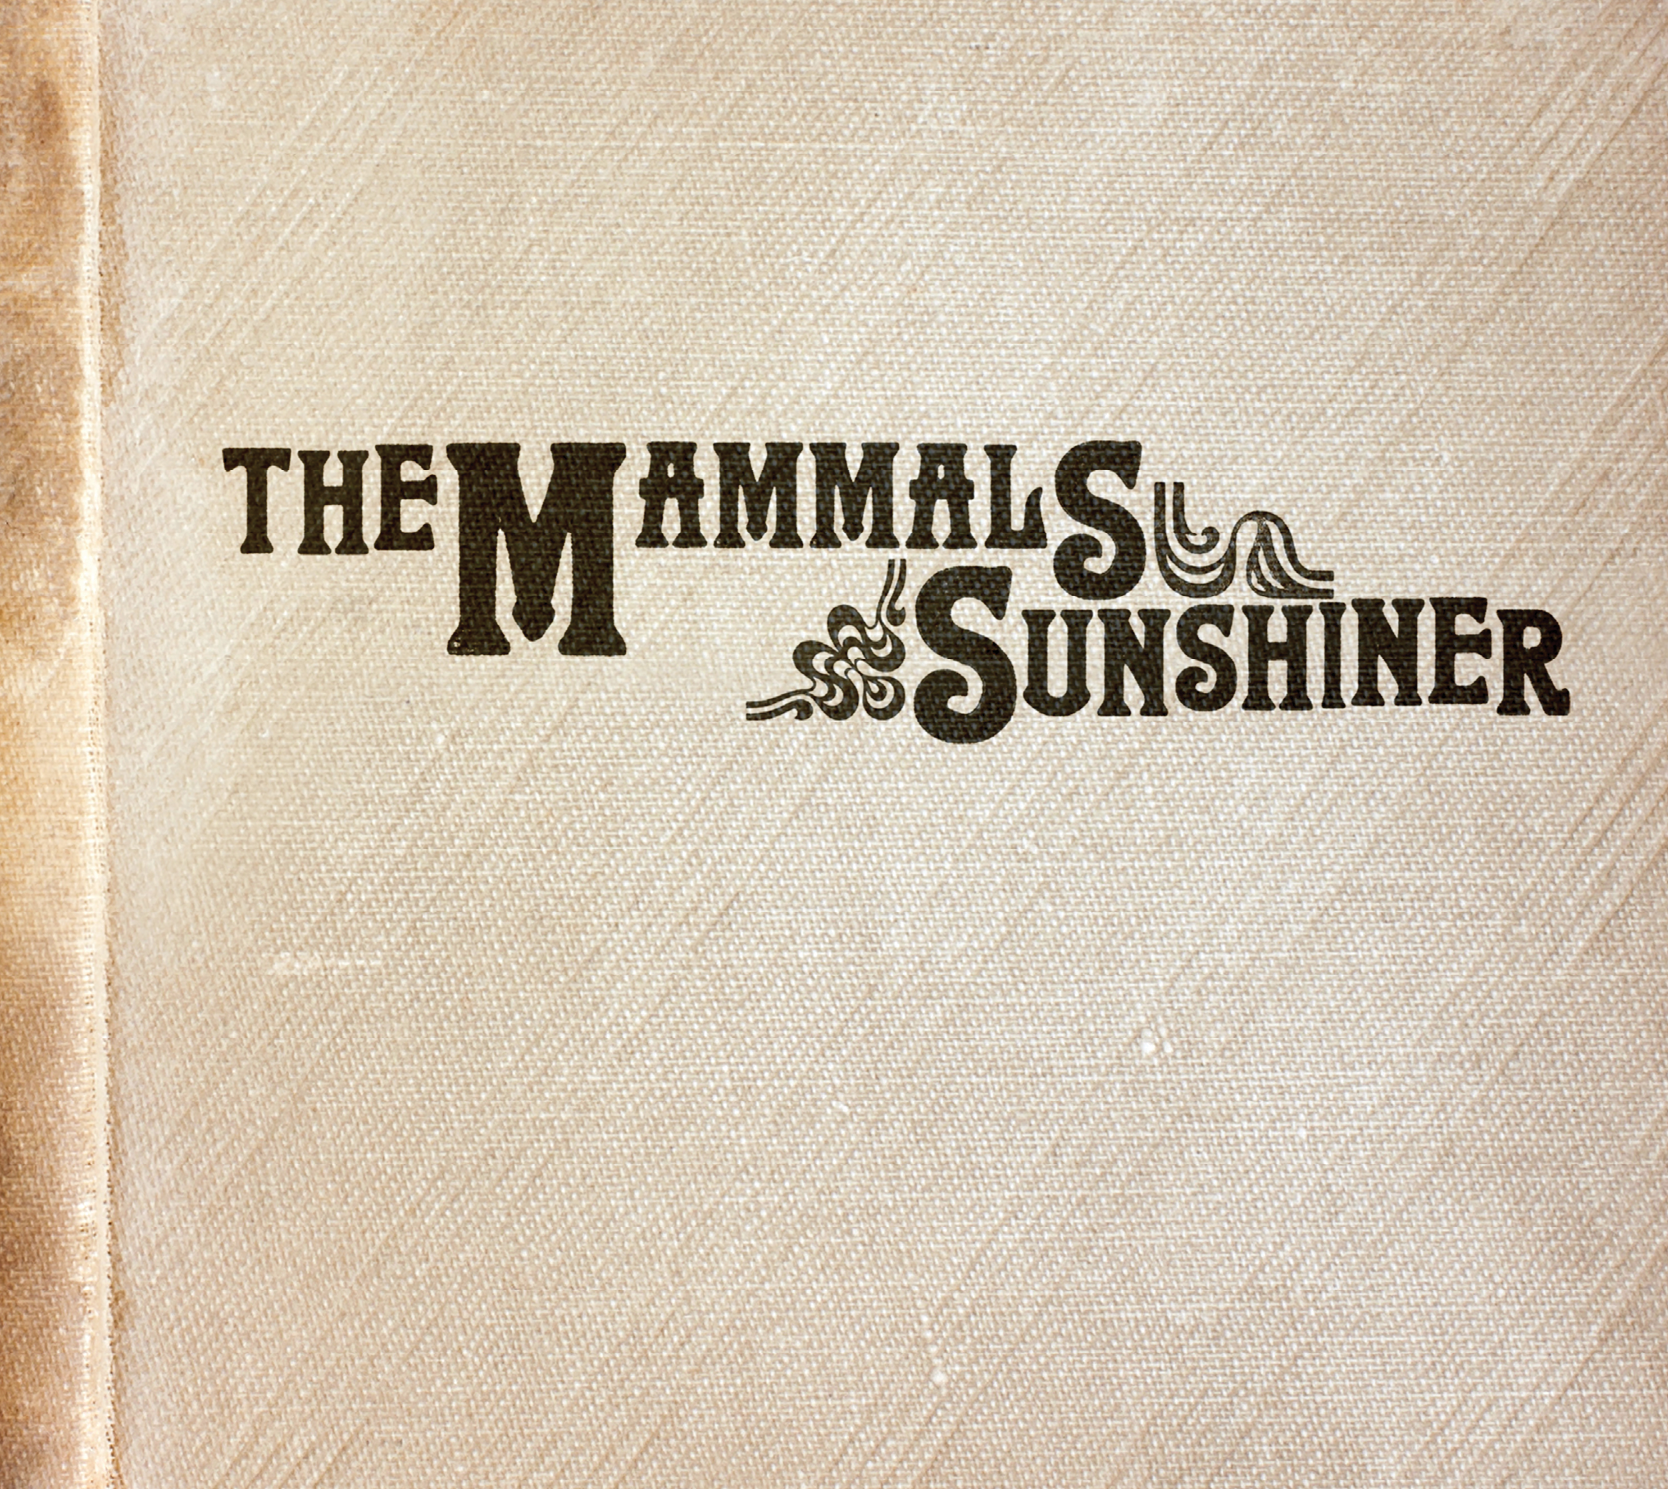 SunshinerAlbumCover.png